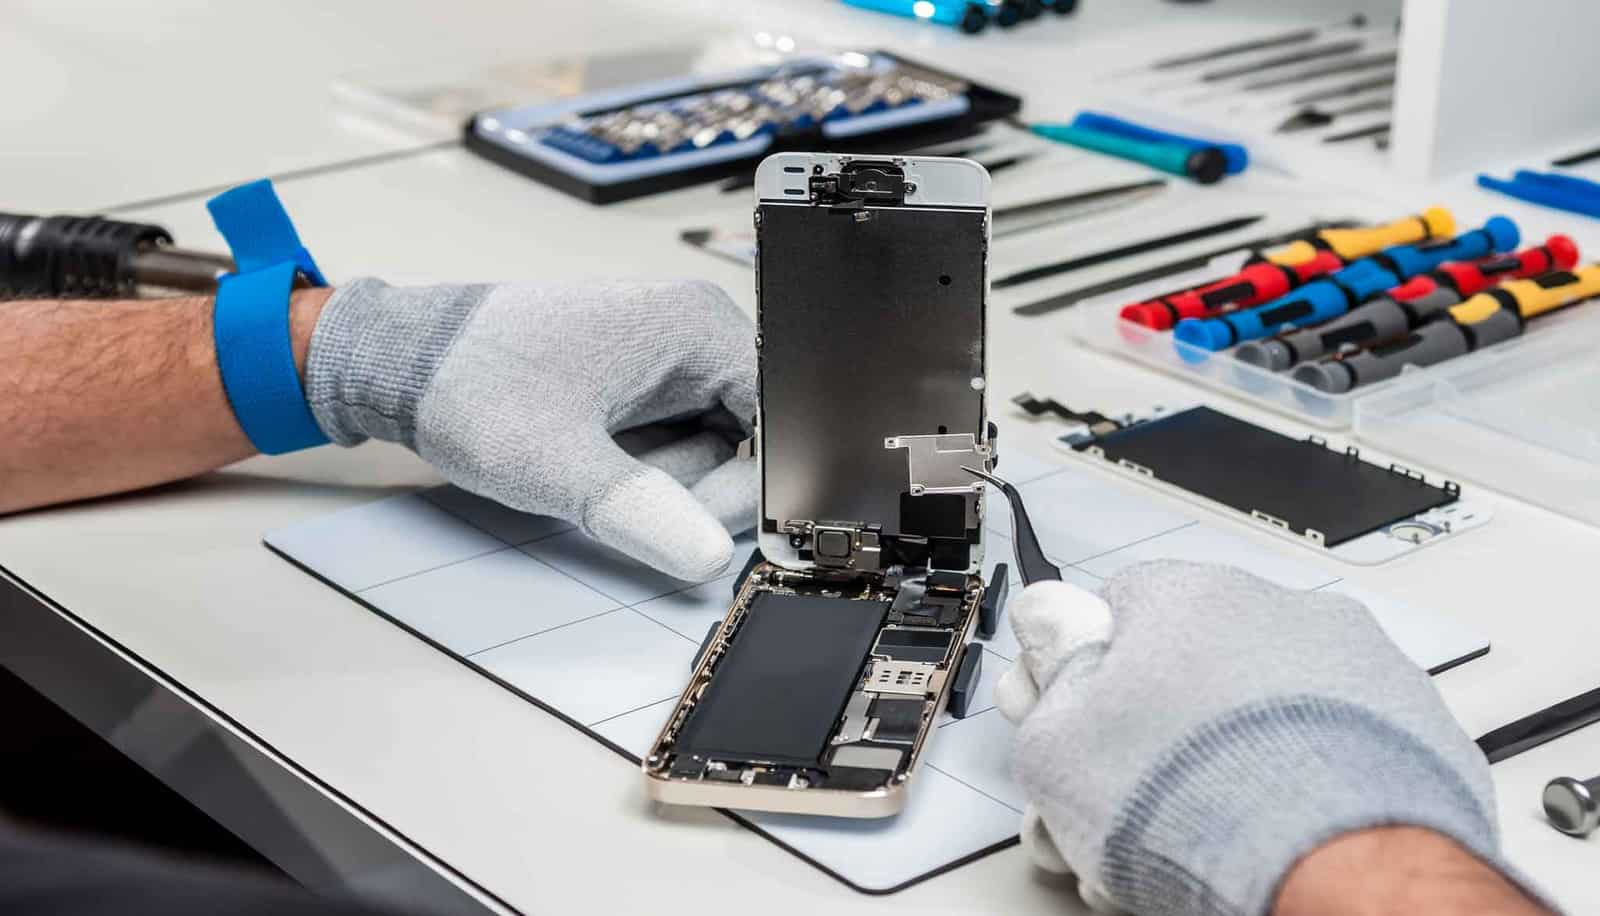 Mobile phone repair companies